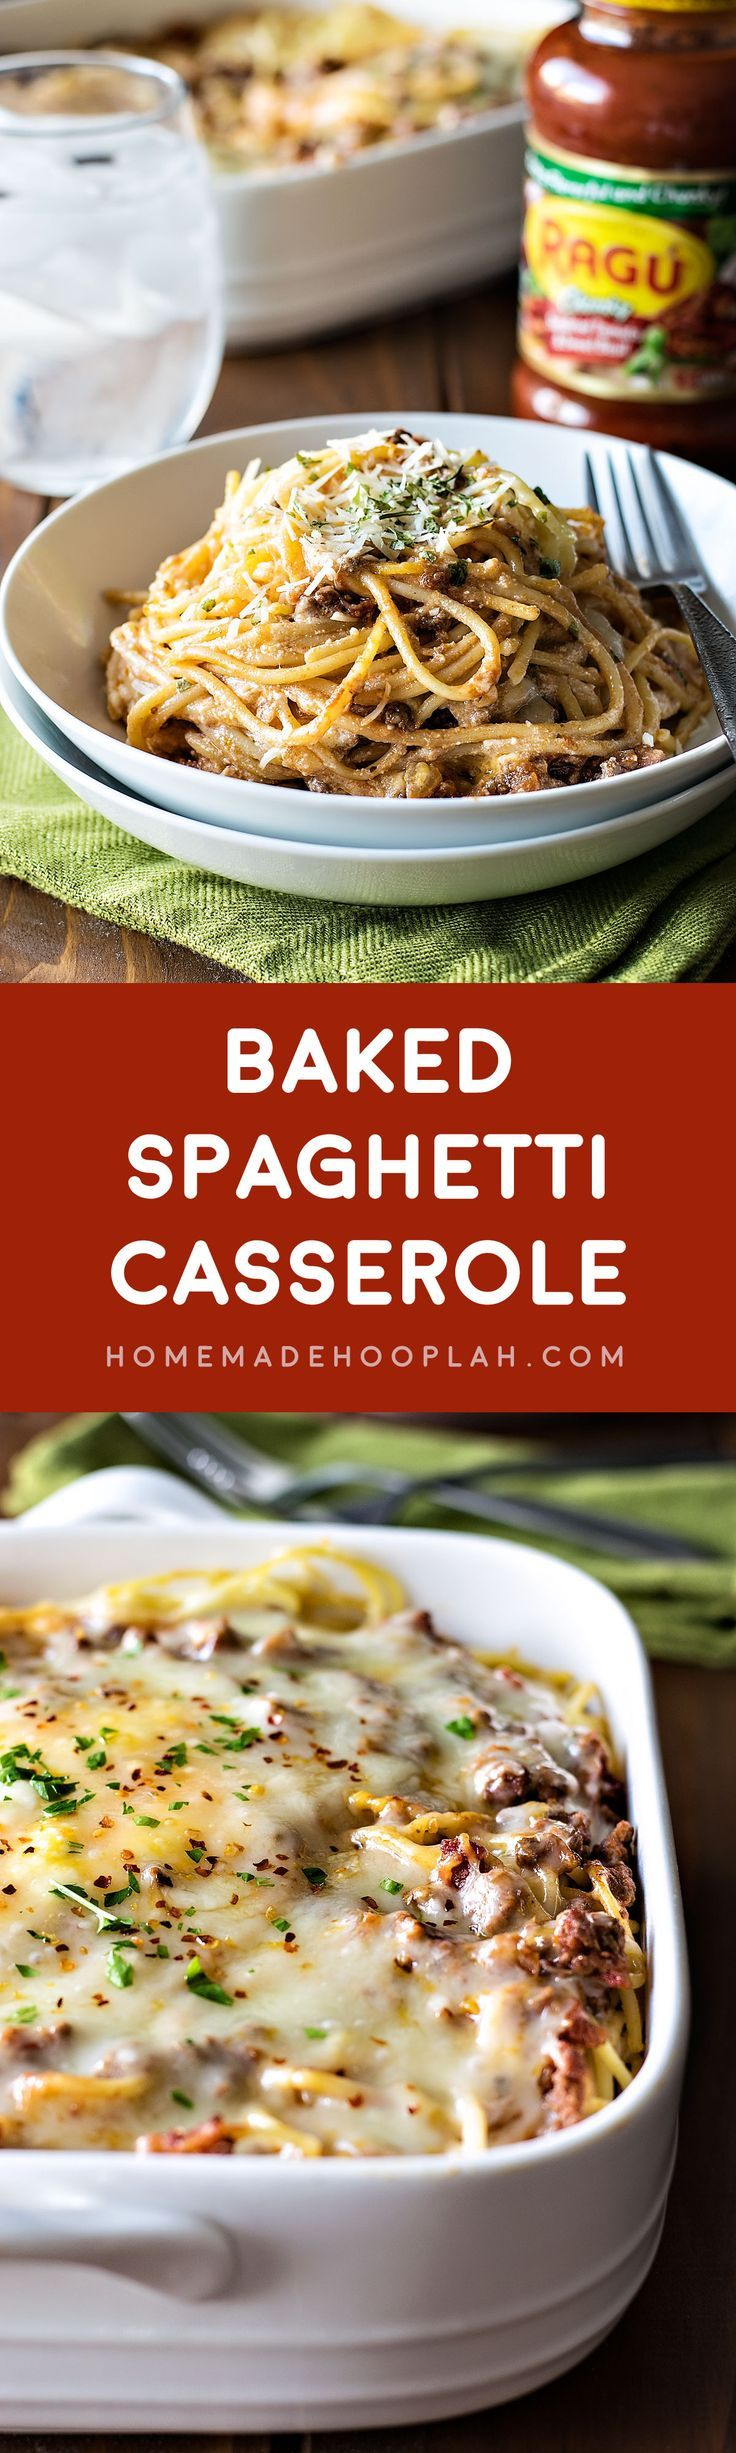 Baked Spaghetti Casserole! Revamp your boring spaghetti by baking it in a deep…